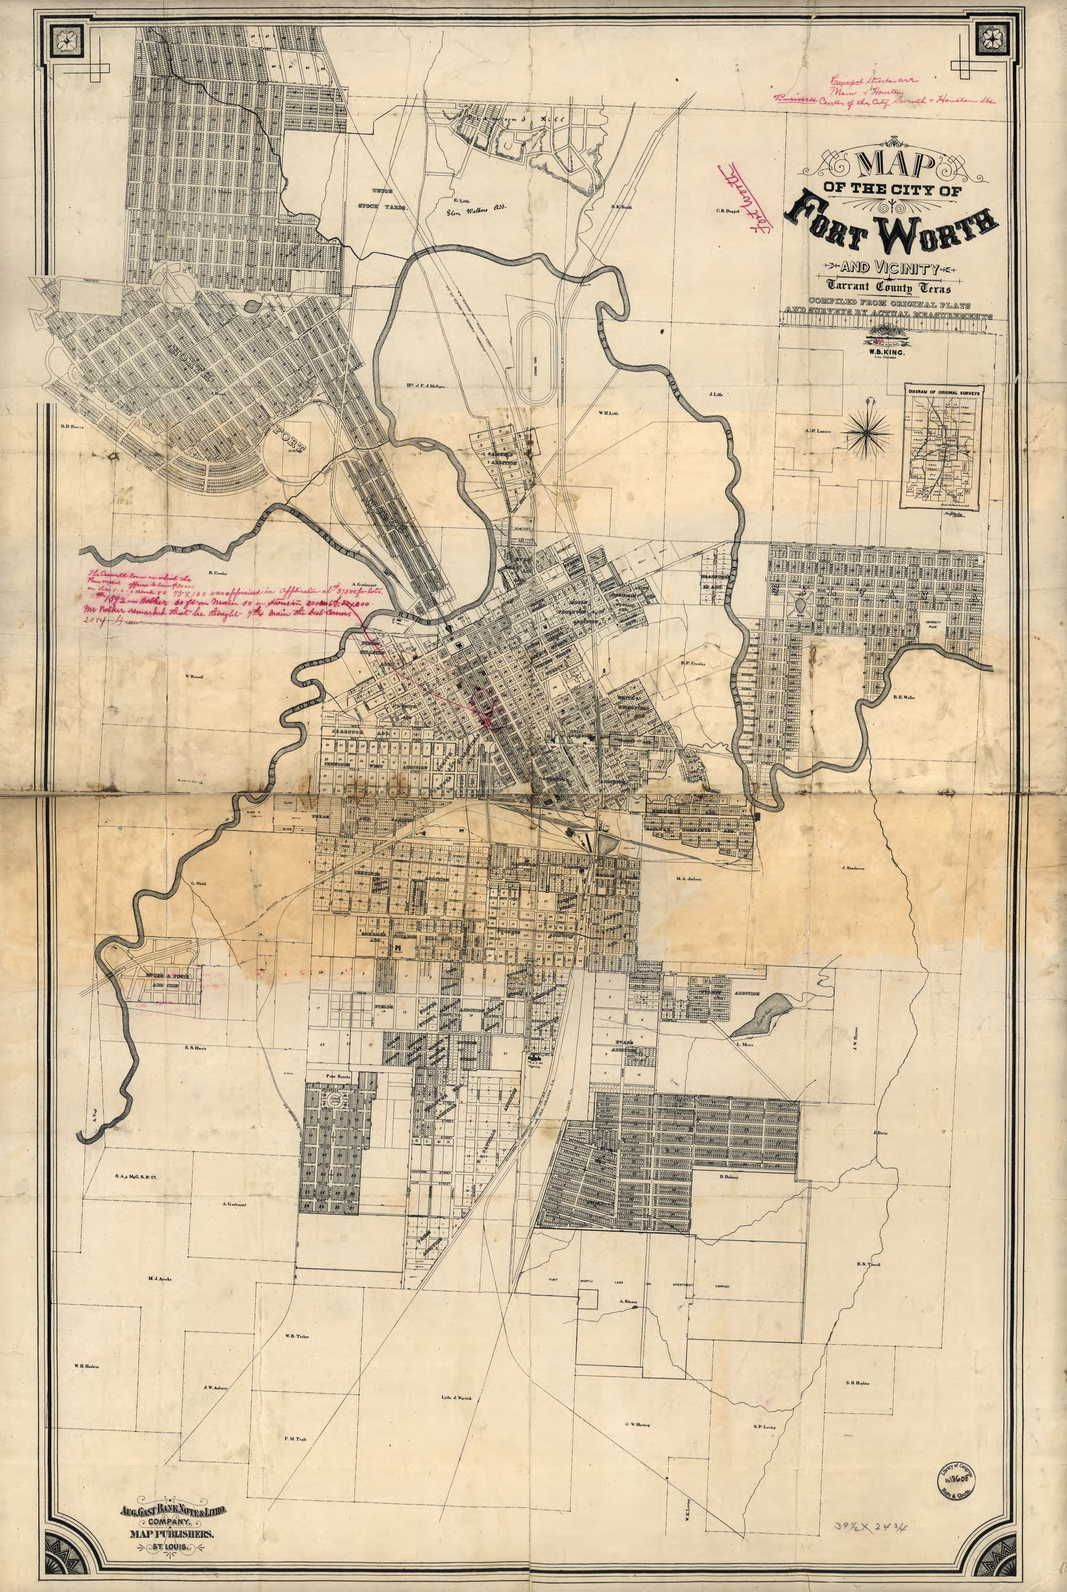 Map Of Texas 1880.Fort Worth Texas 1880 Ancestry Com Maps Fort Worth Texas